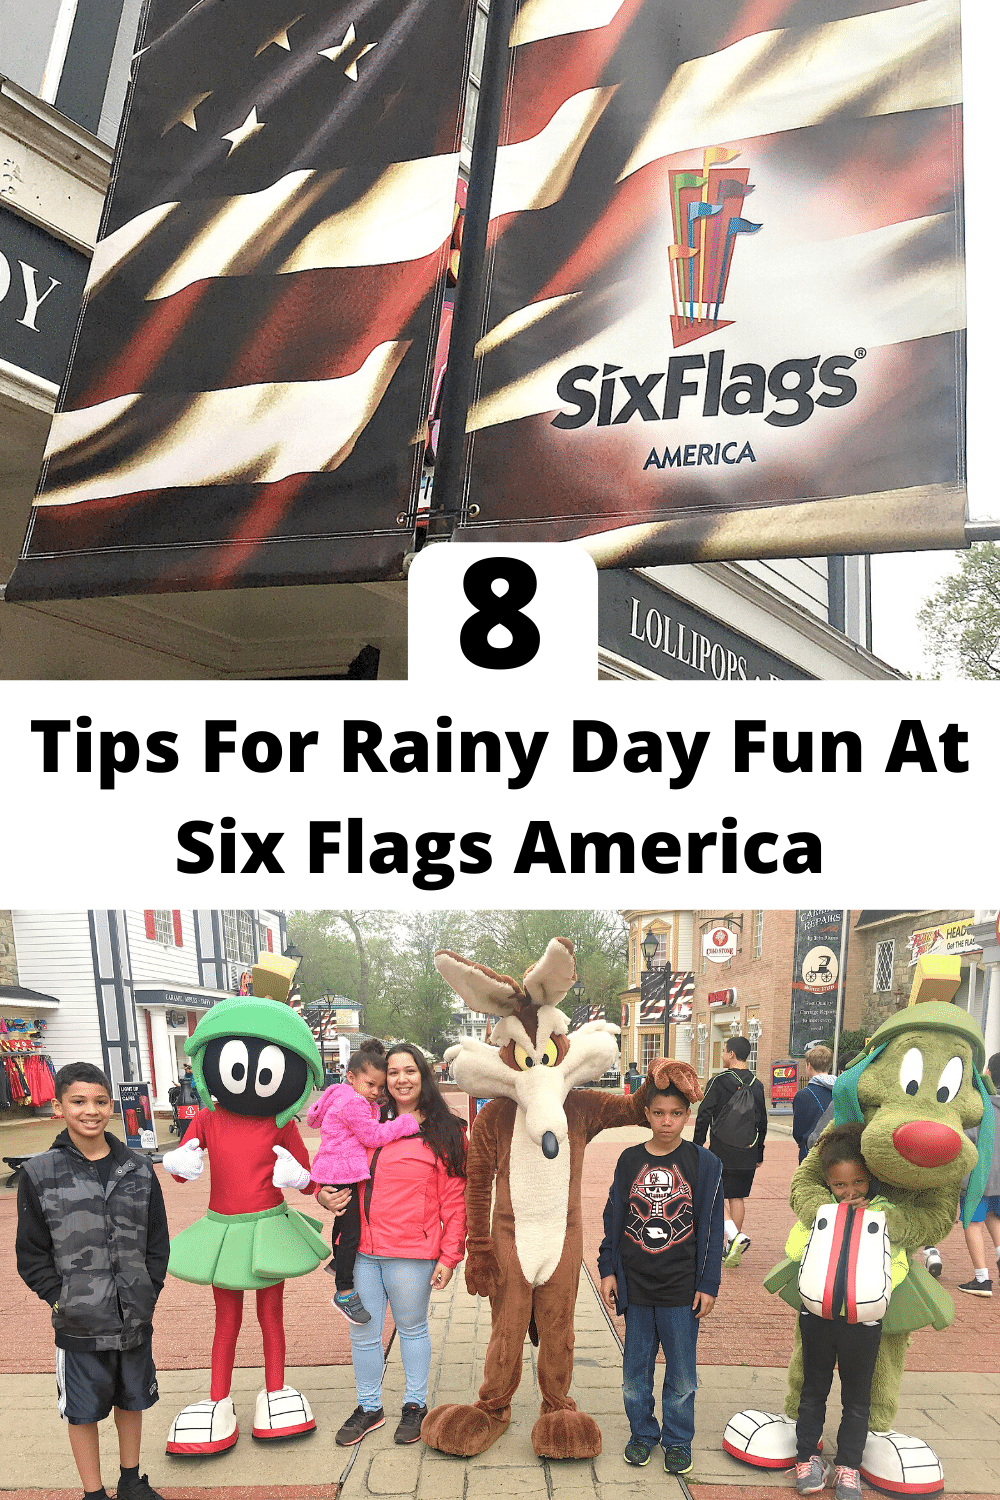 8 Tips For Rainy Day Fun At Six Flags America. Read my 8 Tips For Rainy Day Fun At Six Flags America, my tips include helpful information along with fun rides and attractions you can enjoy rain or shine.